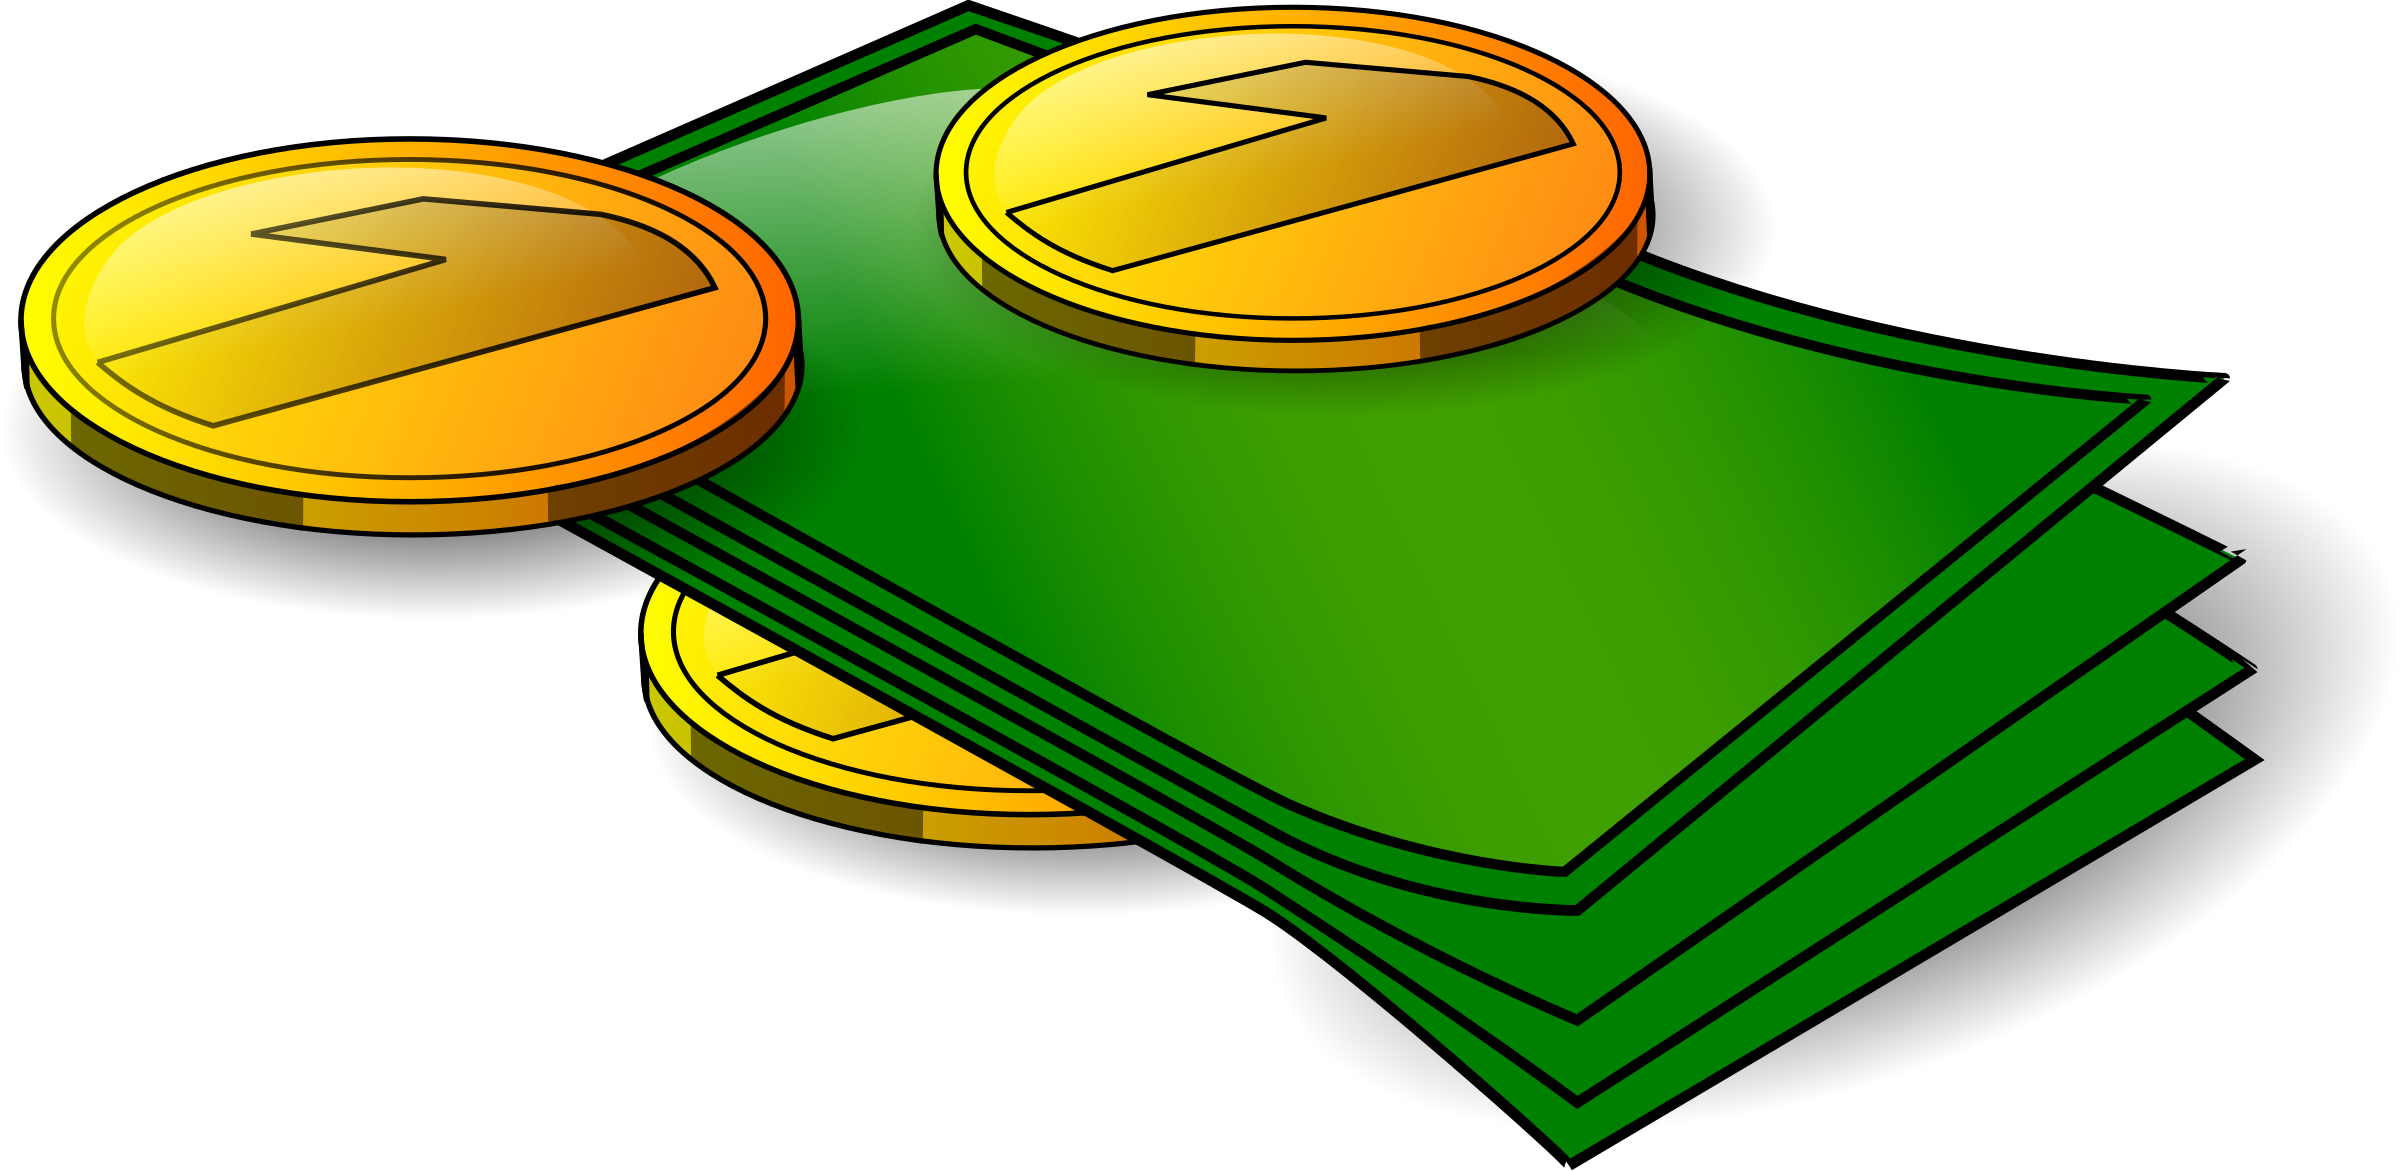 How to draw money. Zucchini clipart patola